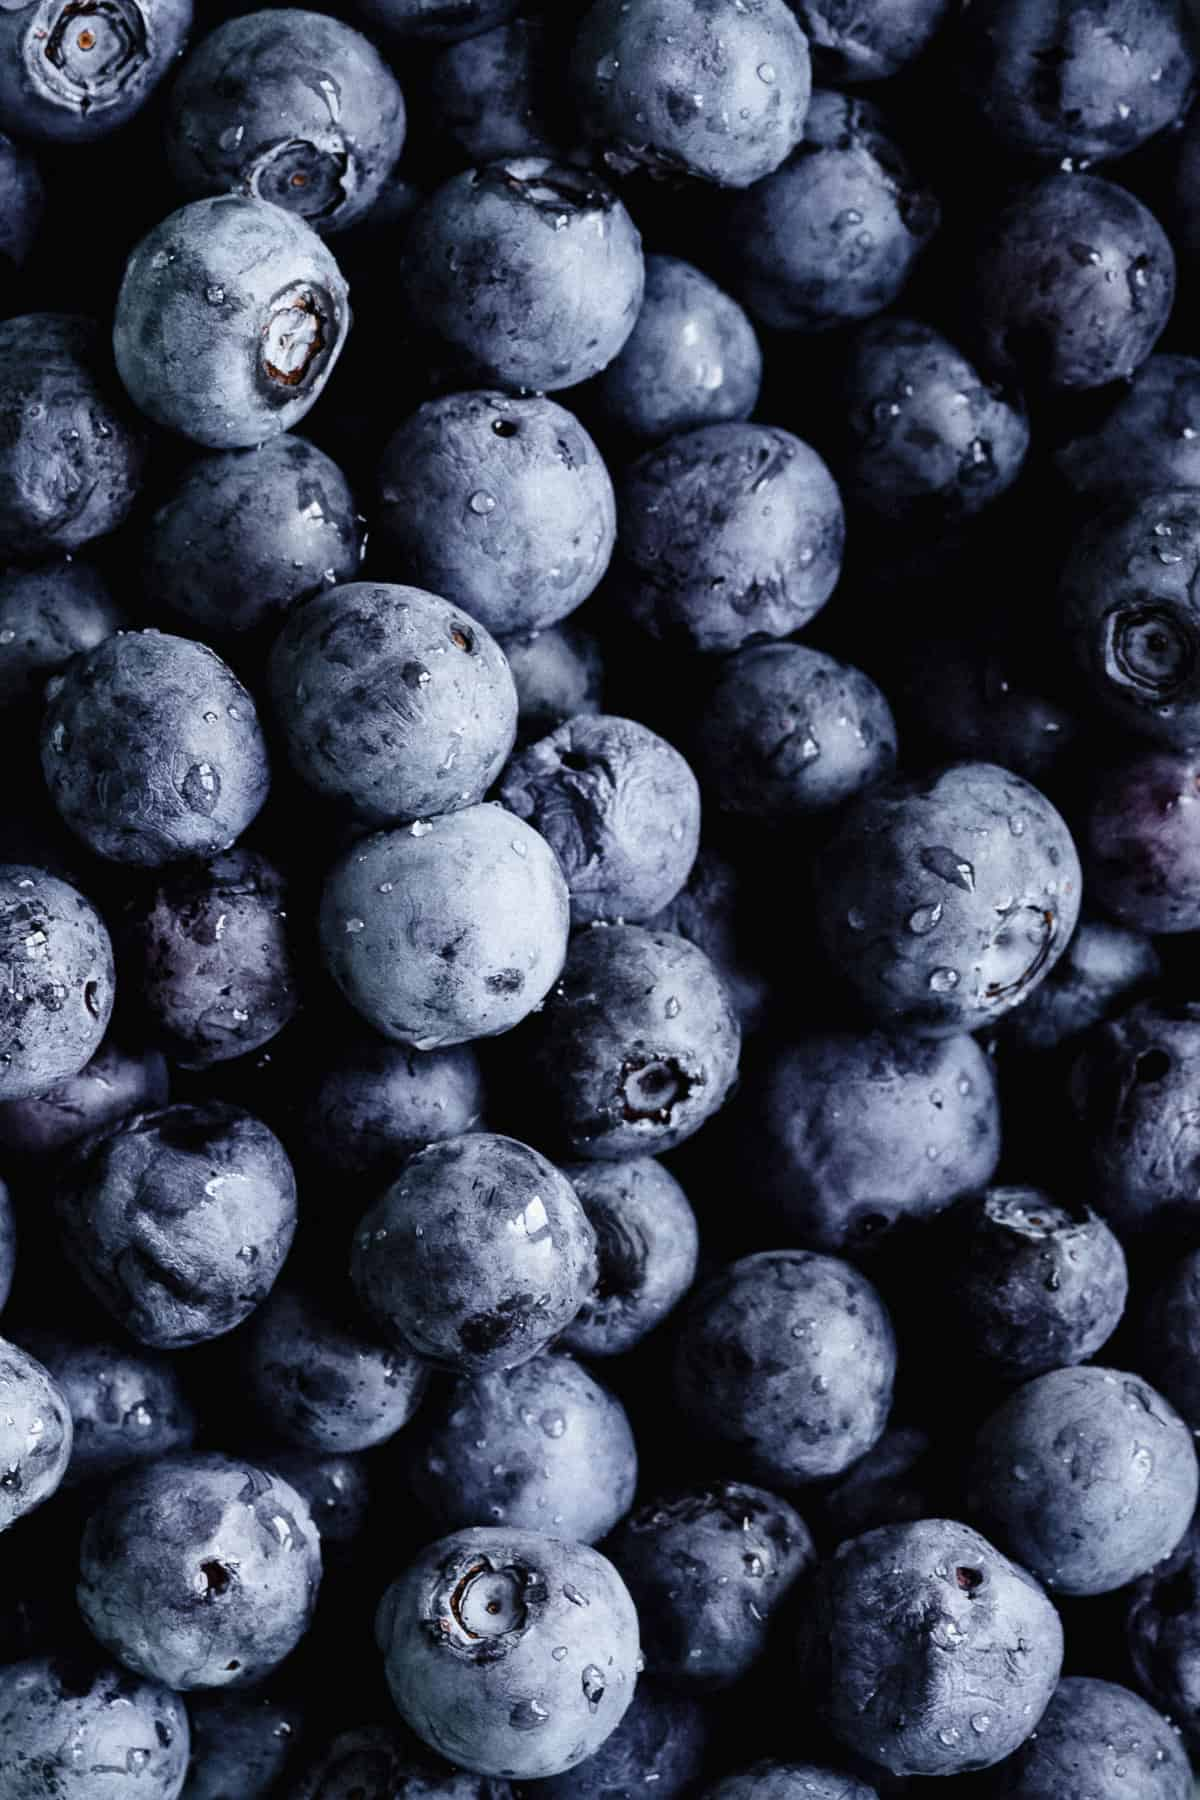 Close up photo of delicious fresh blueberries used in this recipe.